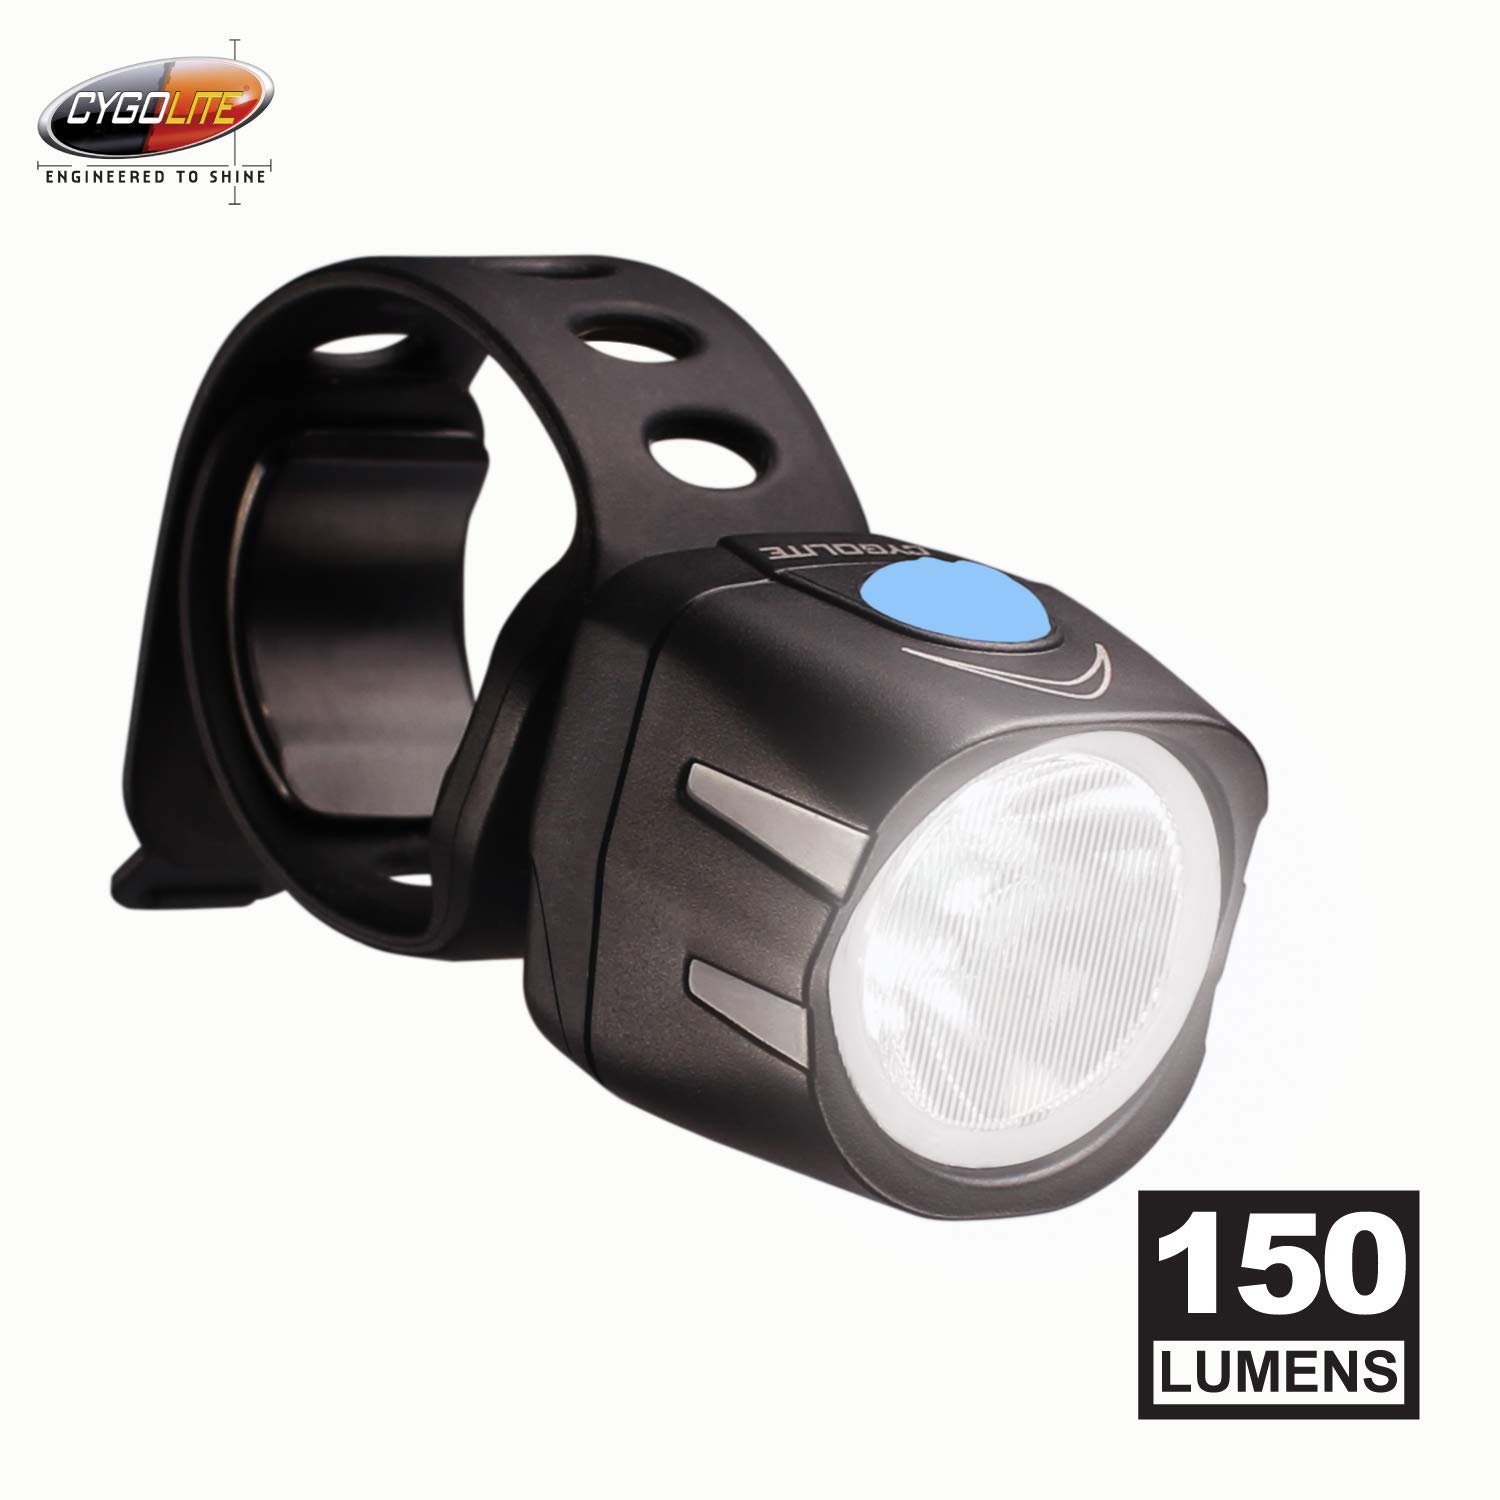 Cygolite Dice HL 150 Lumen Bike Light 6 Night 2 Daytime Modes Ultra Compact Design IP64 Water Resistant Sturdy Flexible Mount USB Rechargeable Headlight for Aero Road Commuter Bicycles